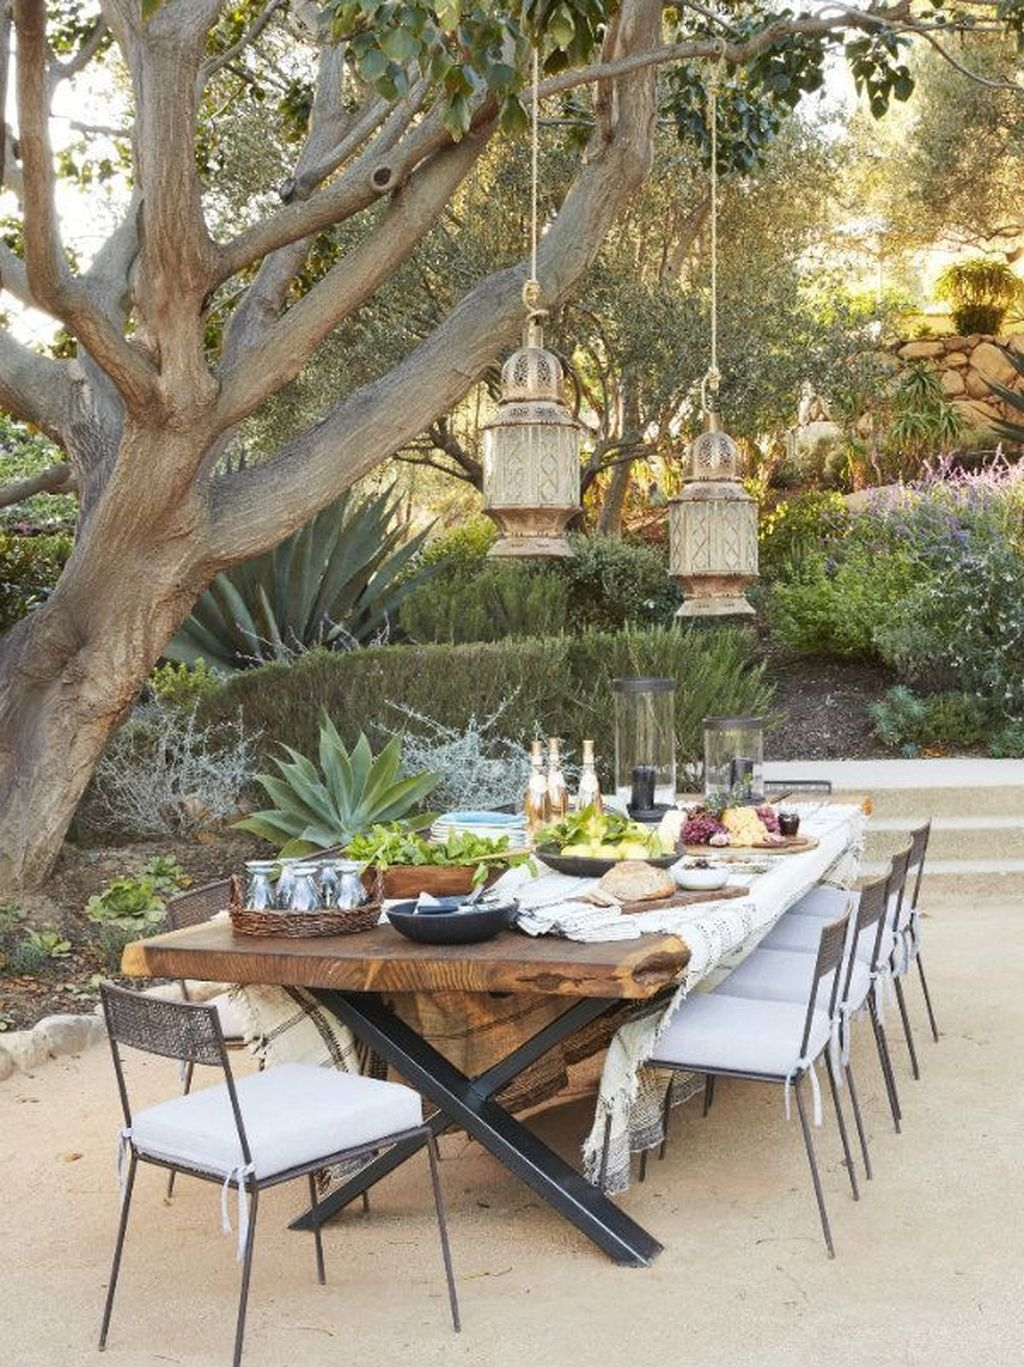 5 Ideas For the Perfect Al Fresco Dining Area 04 Al Fresco Dining Area 5 Ideas For the Perfect Al Fresco Dining Area 5 Ideas For the Perfect Al Fresco Dining Area 04